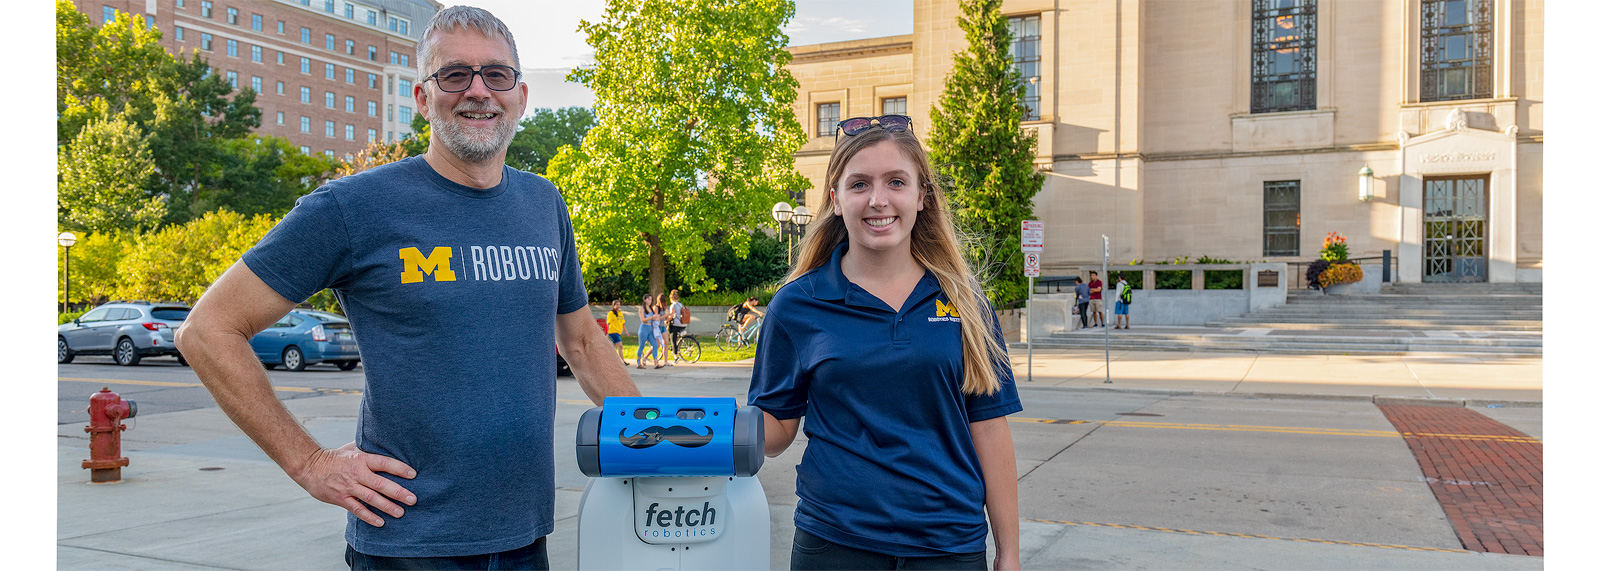 "Jessy Grizzle and Liz Olson of U-M robotics with the robot ""Fetch"""